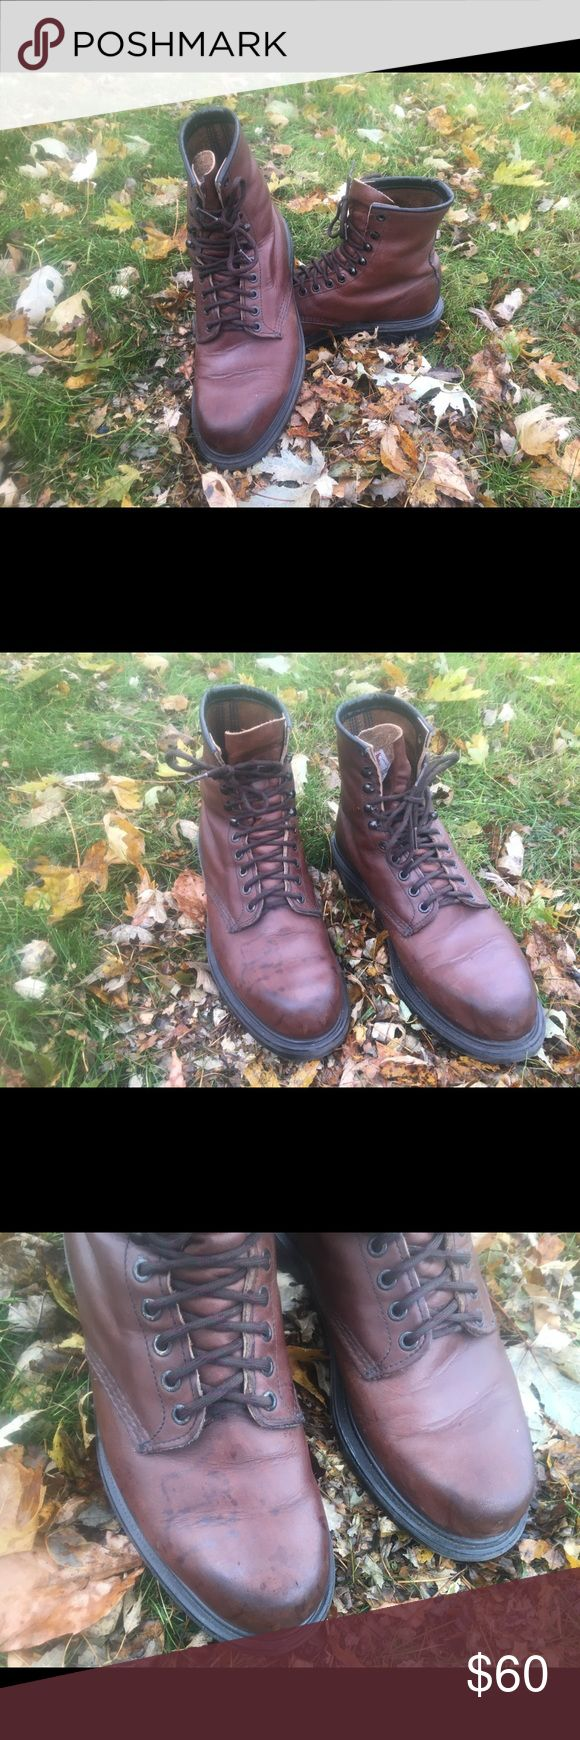 Men's Red Wing Boots Leather Red Wing hiking boots. There is some slight discoloration spots on the right toe box. Red Wing Shoes Shoes Boots